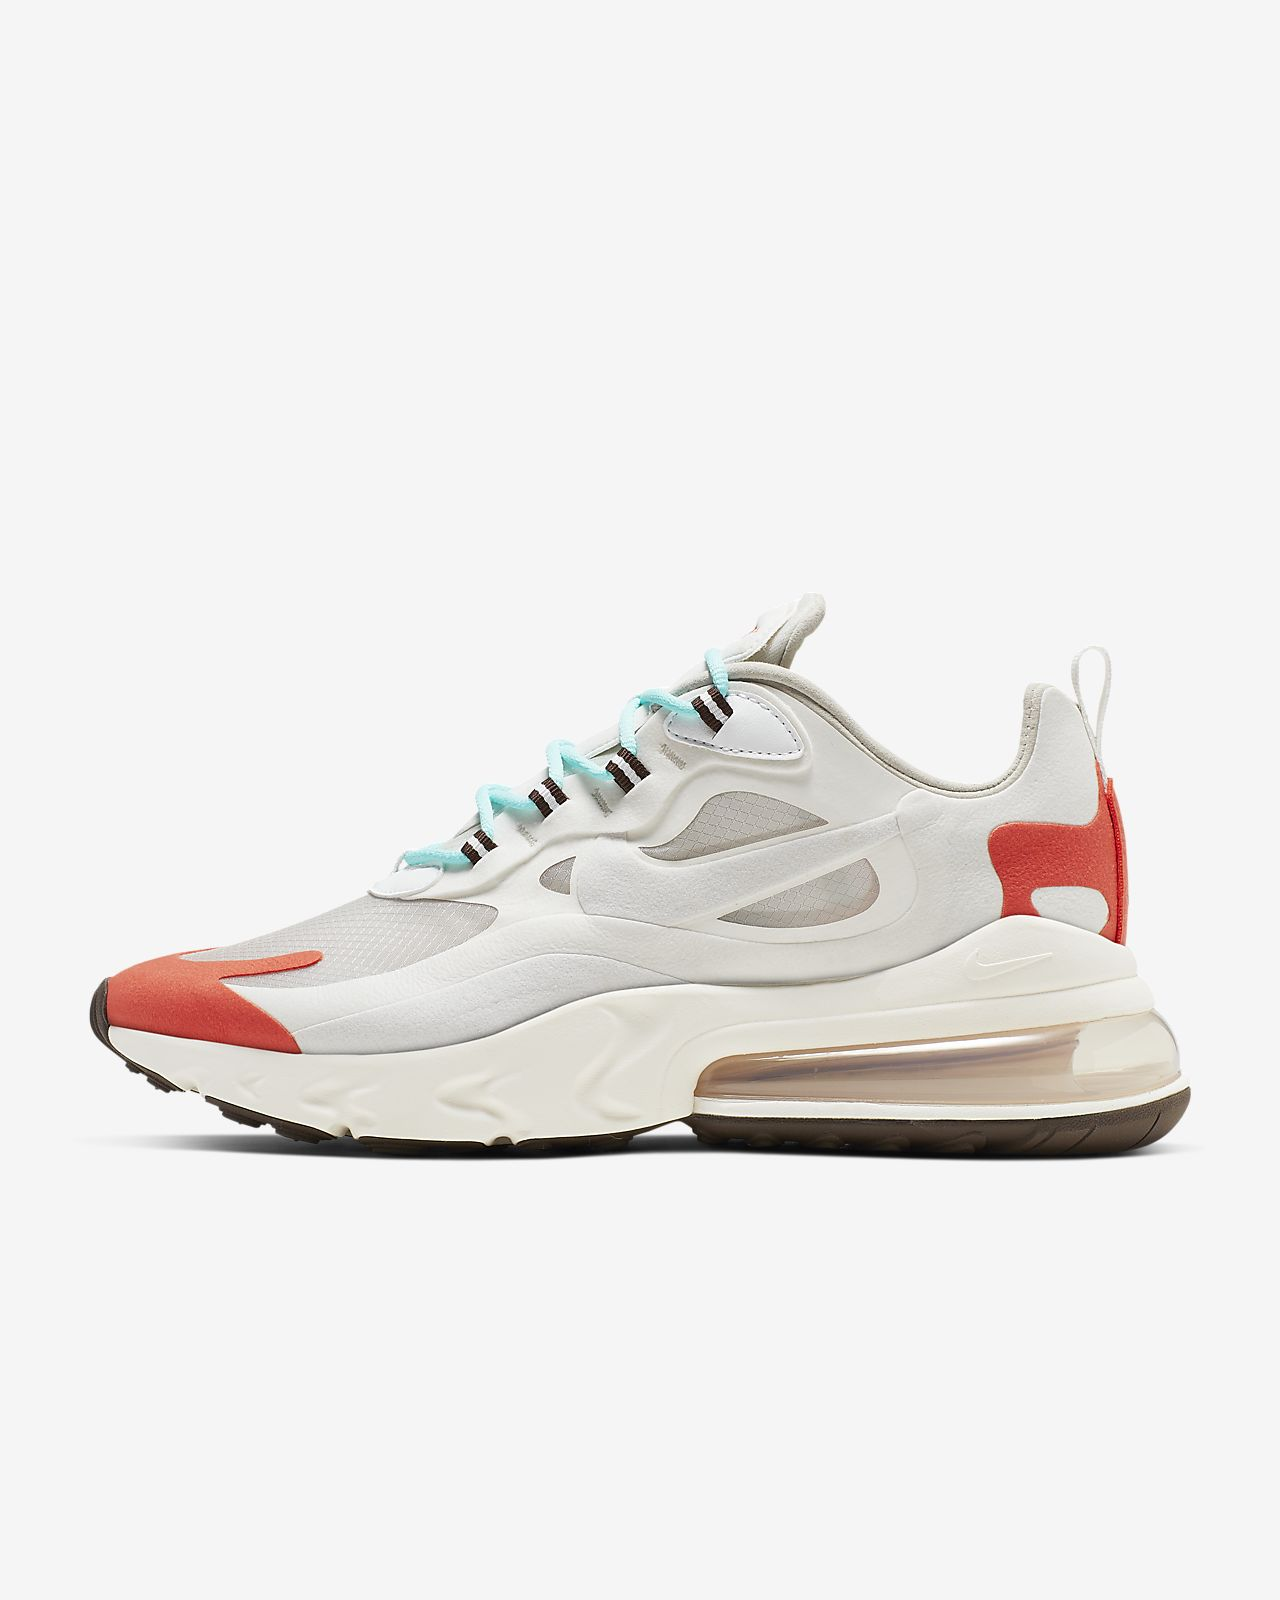 Chaussure Nike Air Max 270 React (Mid-Century Art) pour Homme